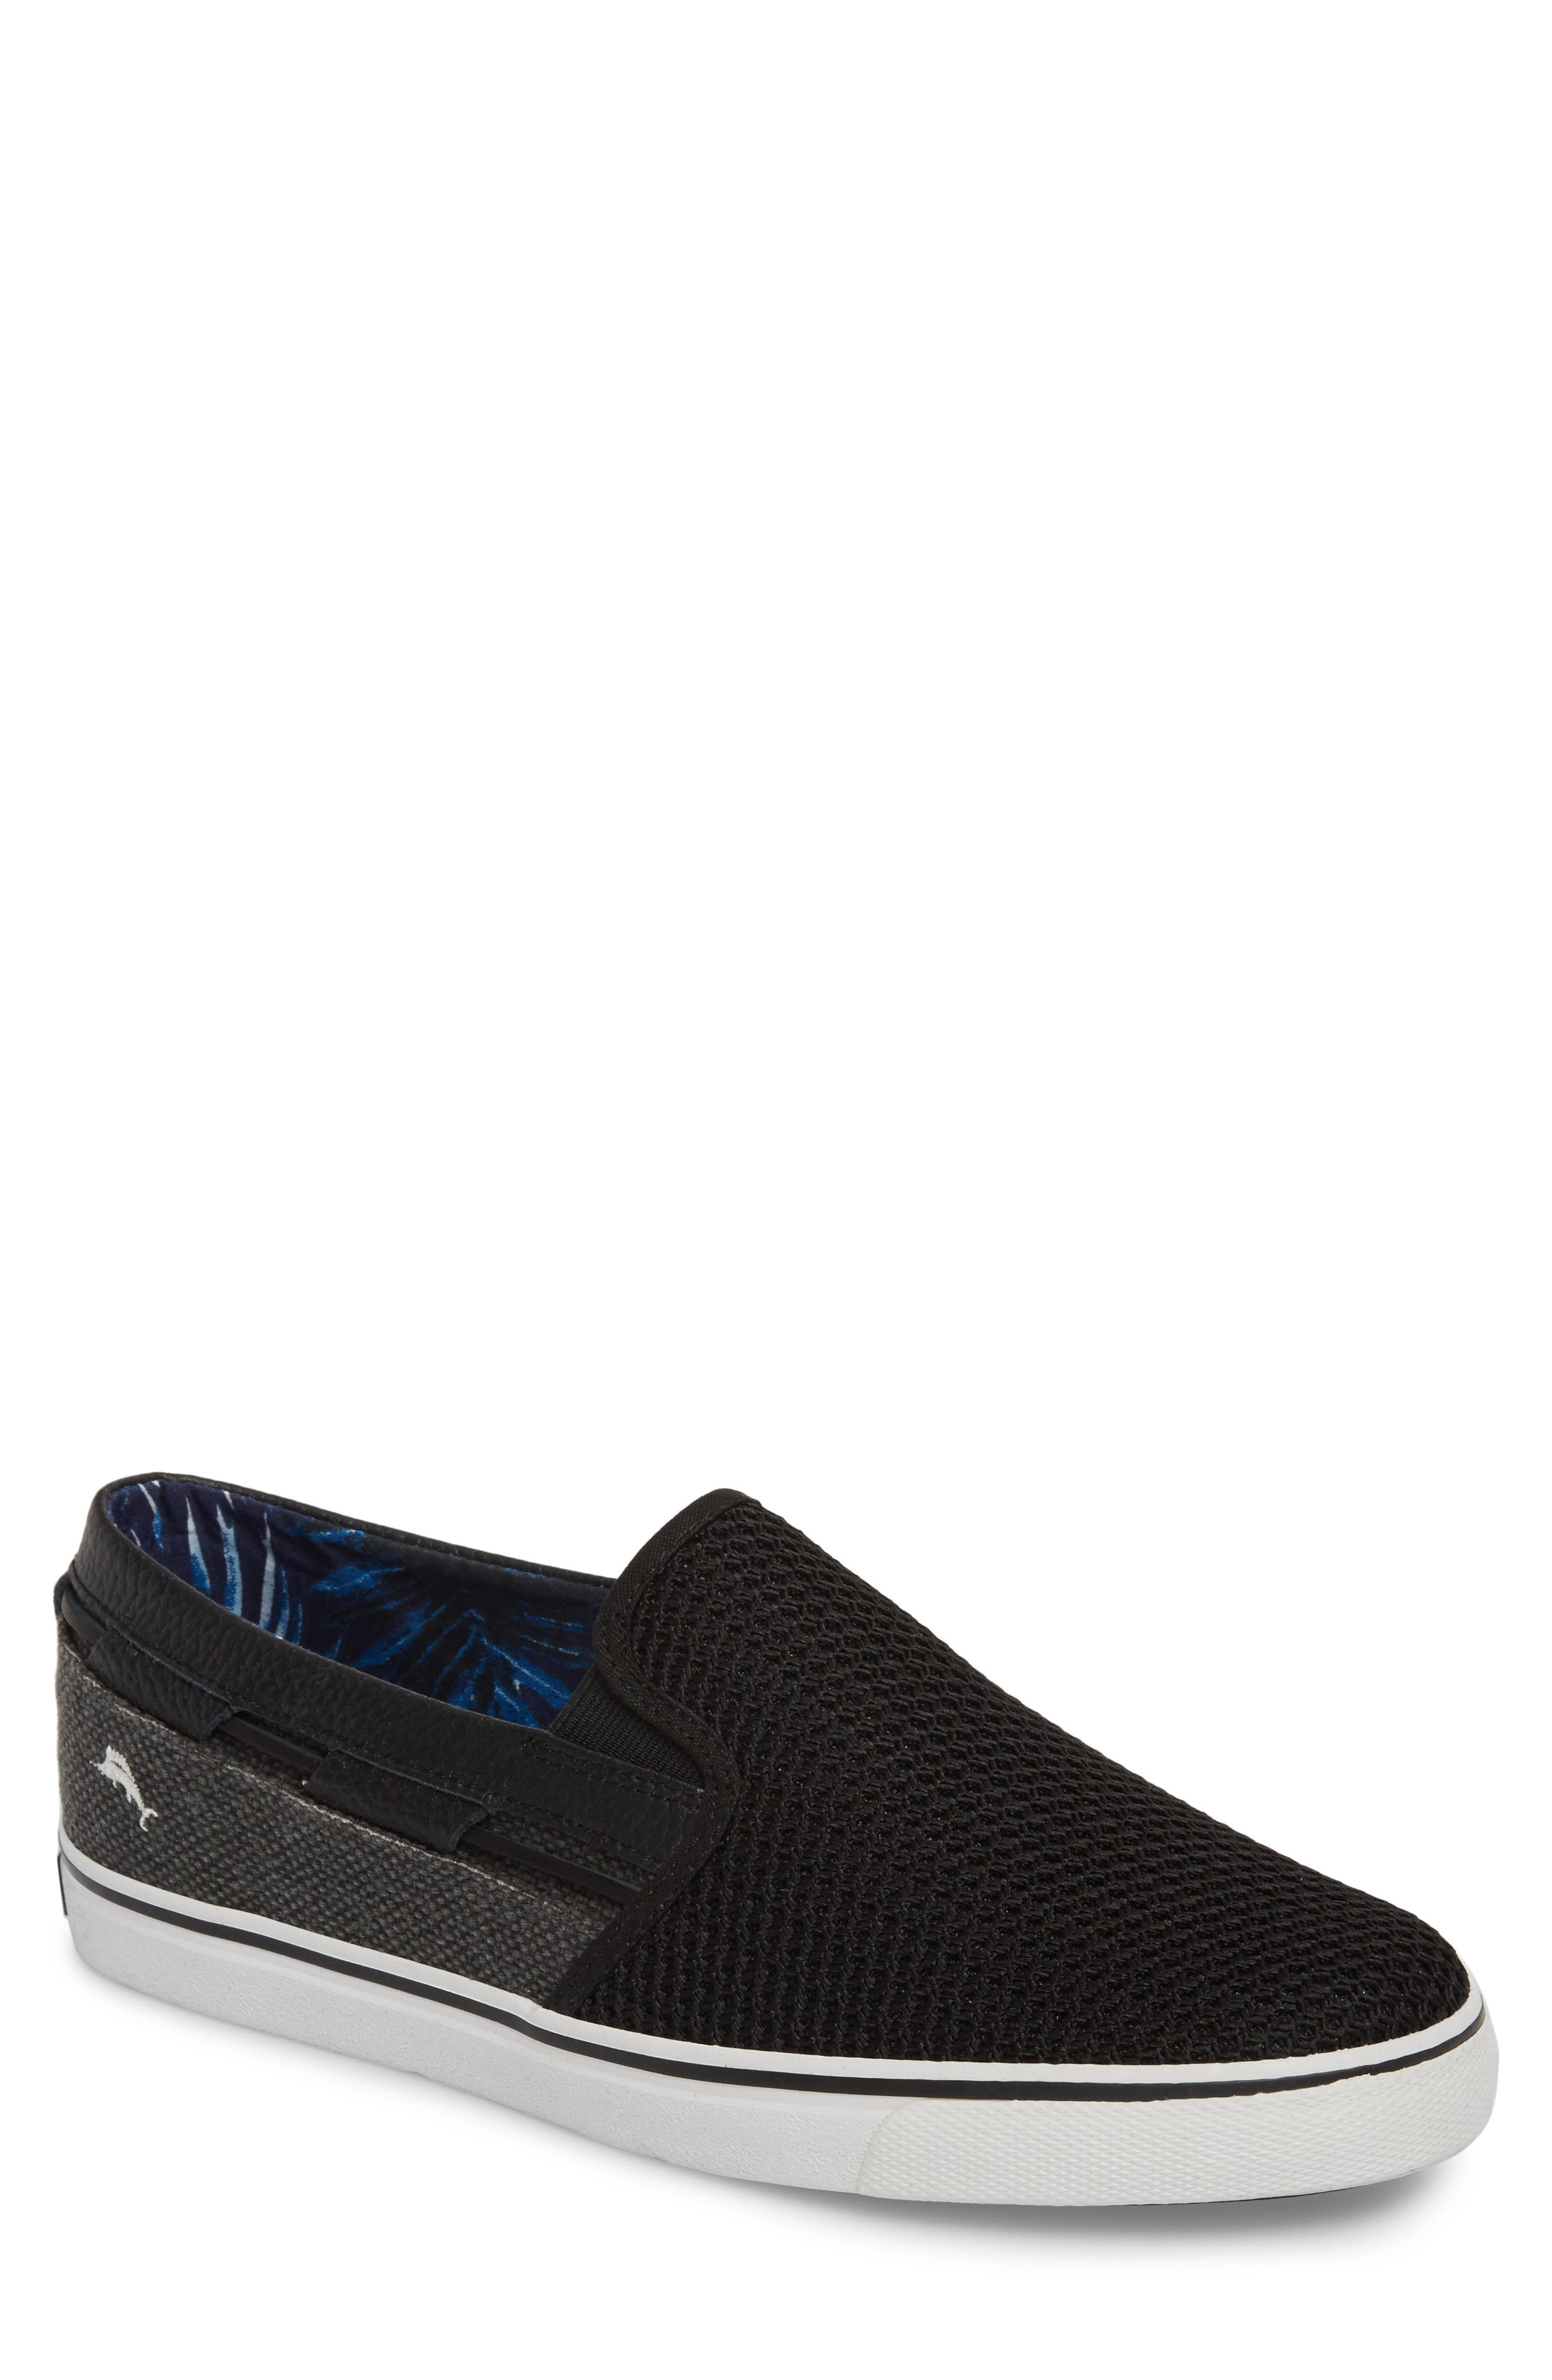 Exodus Mesh Slip-On Sneaker,                         Main,                         color, BLACK MESH/ TEXTILE